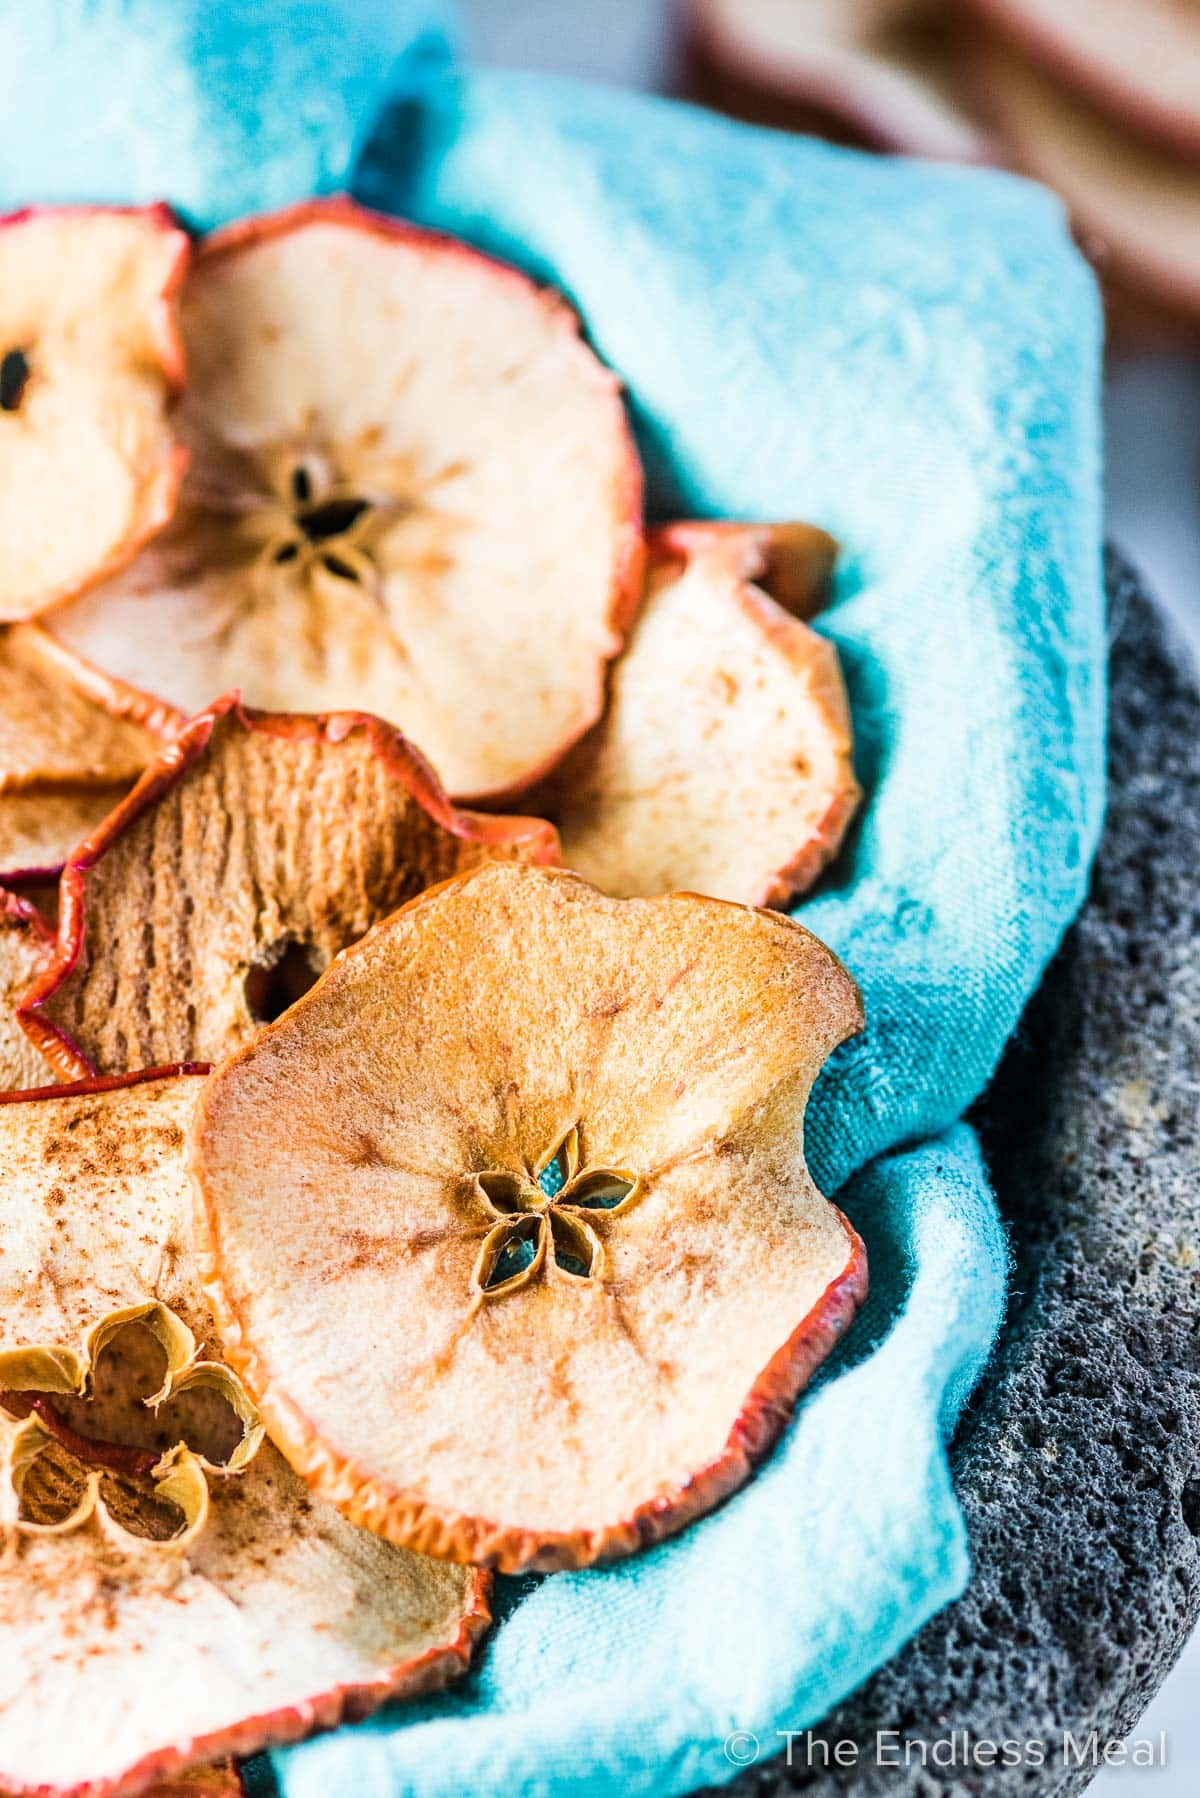 Crispy baked apple chips on a blue cloth.